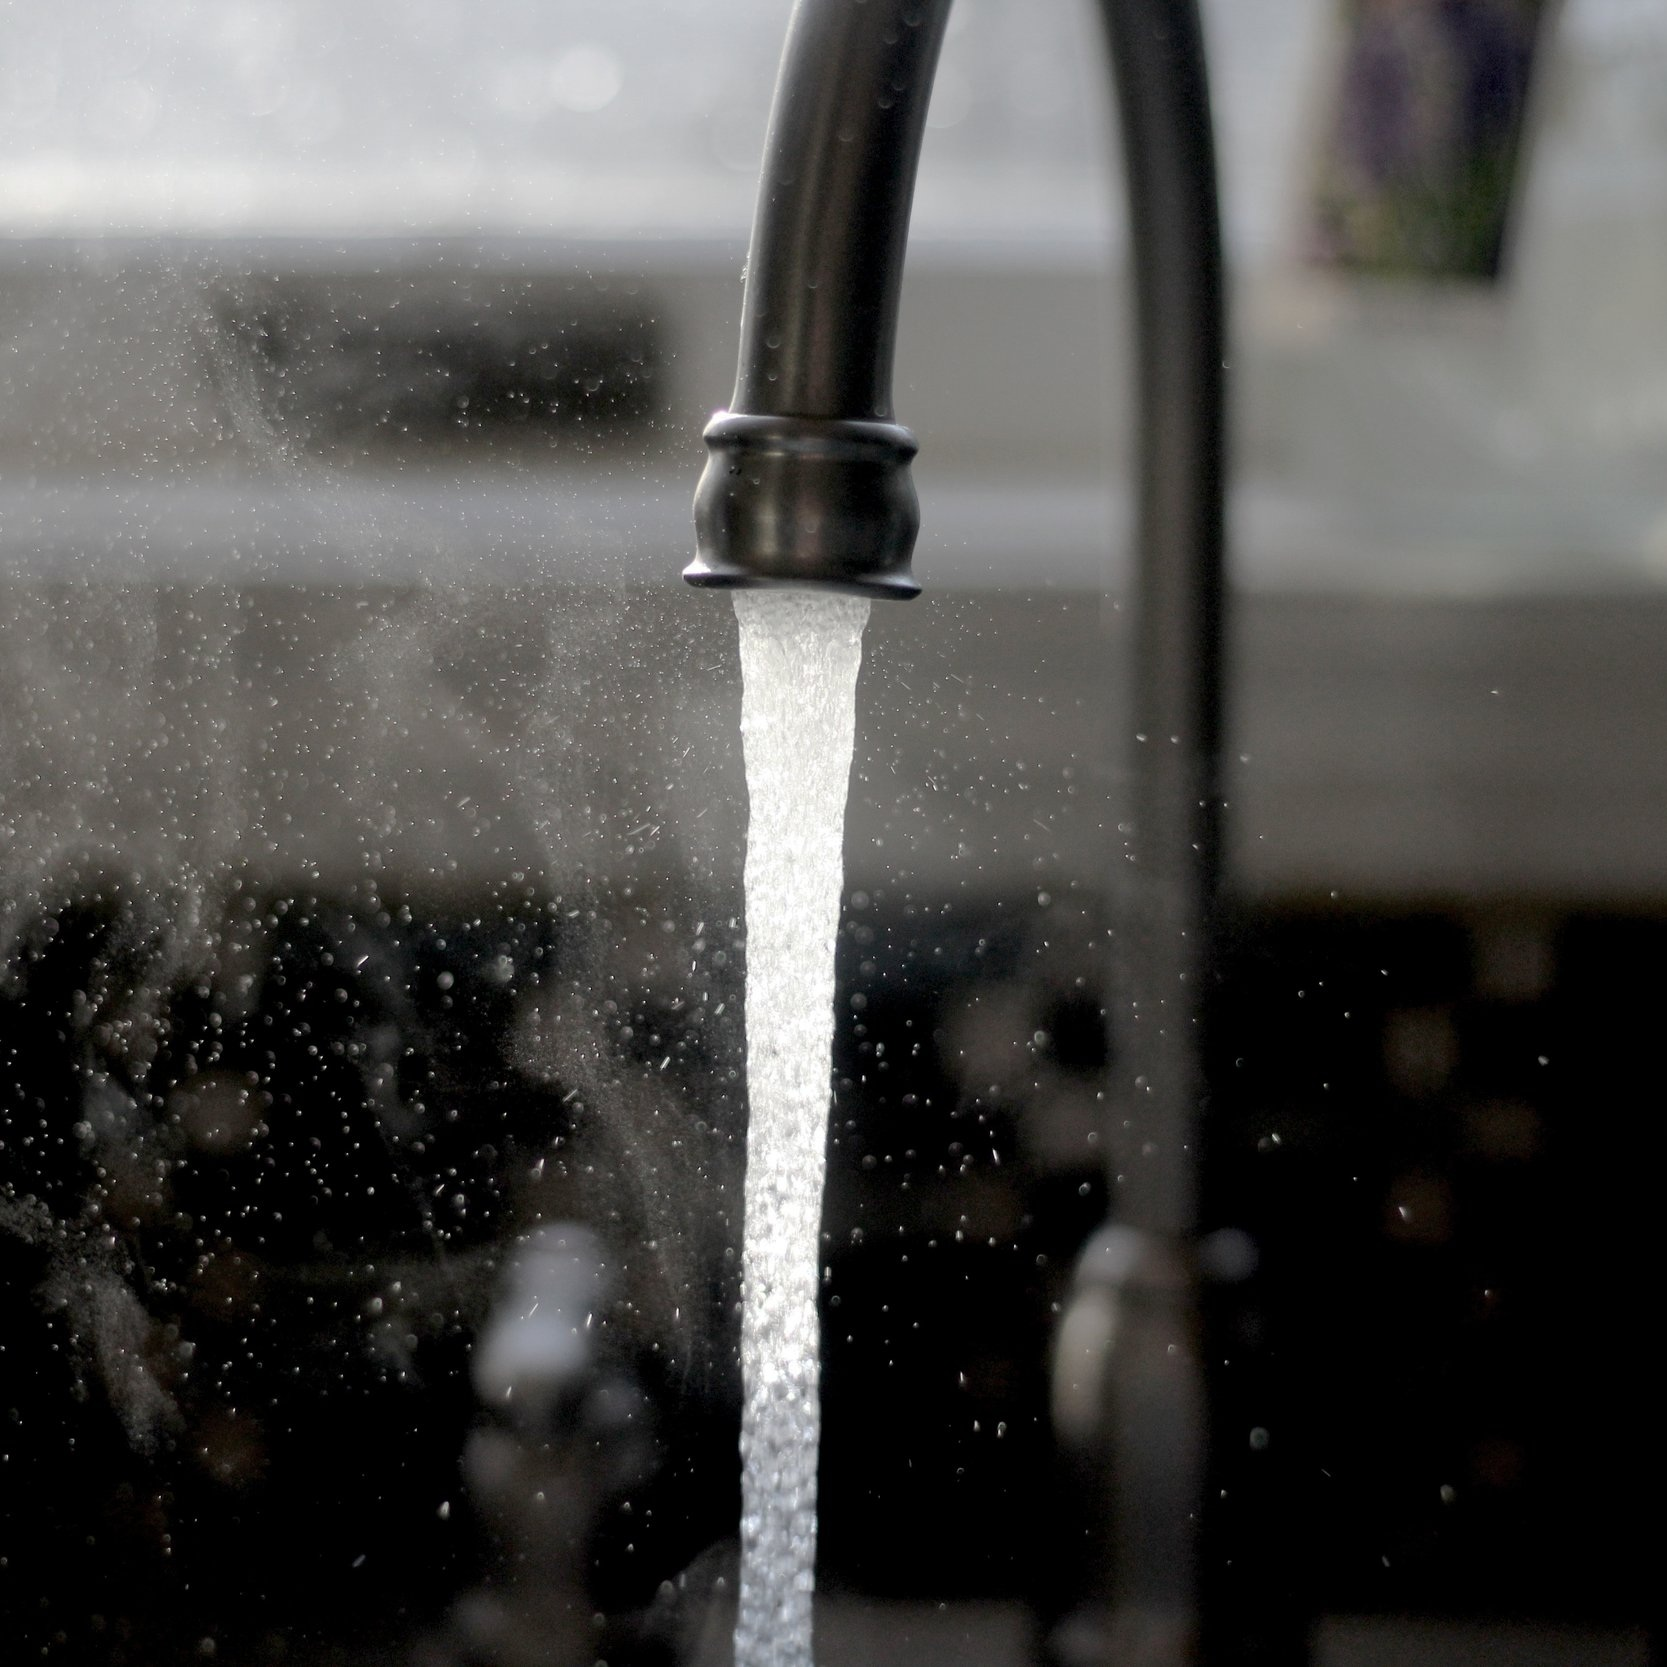 water+from+faucet.jpg